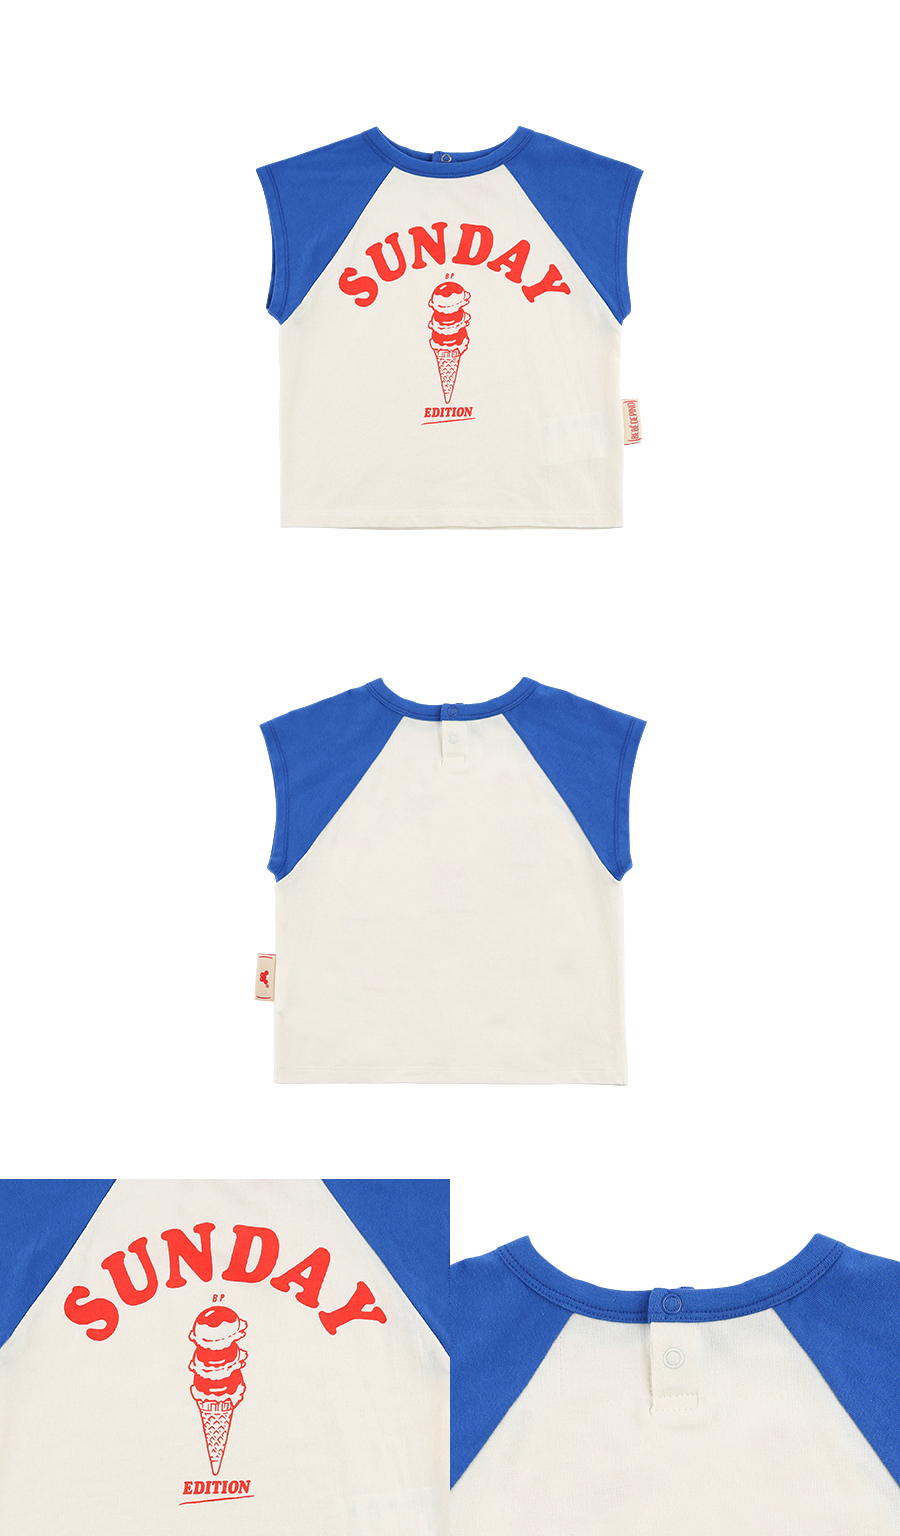 Sunday ice cream baby raglan sleeveless tee 상세 이미지